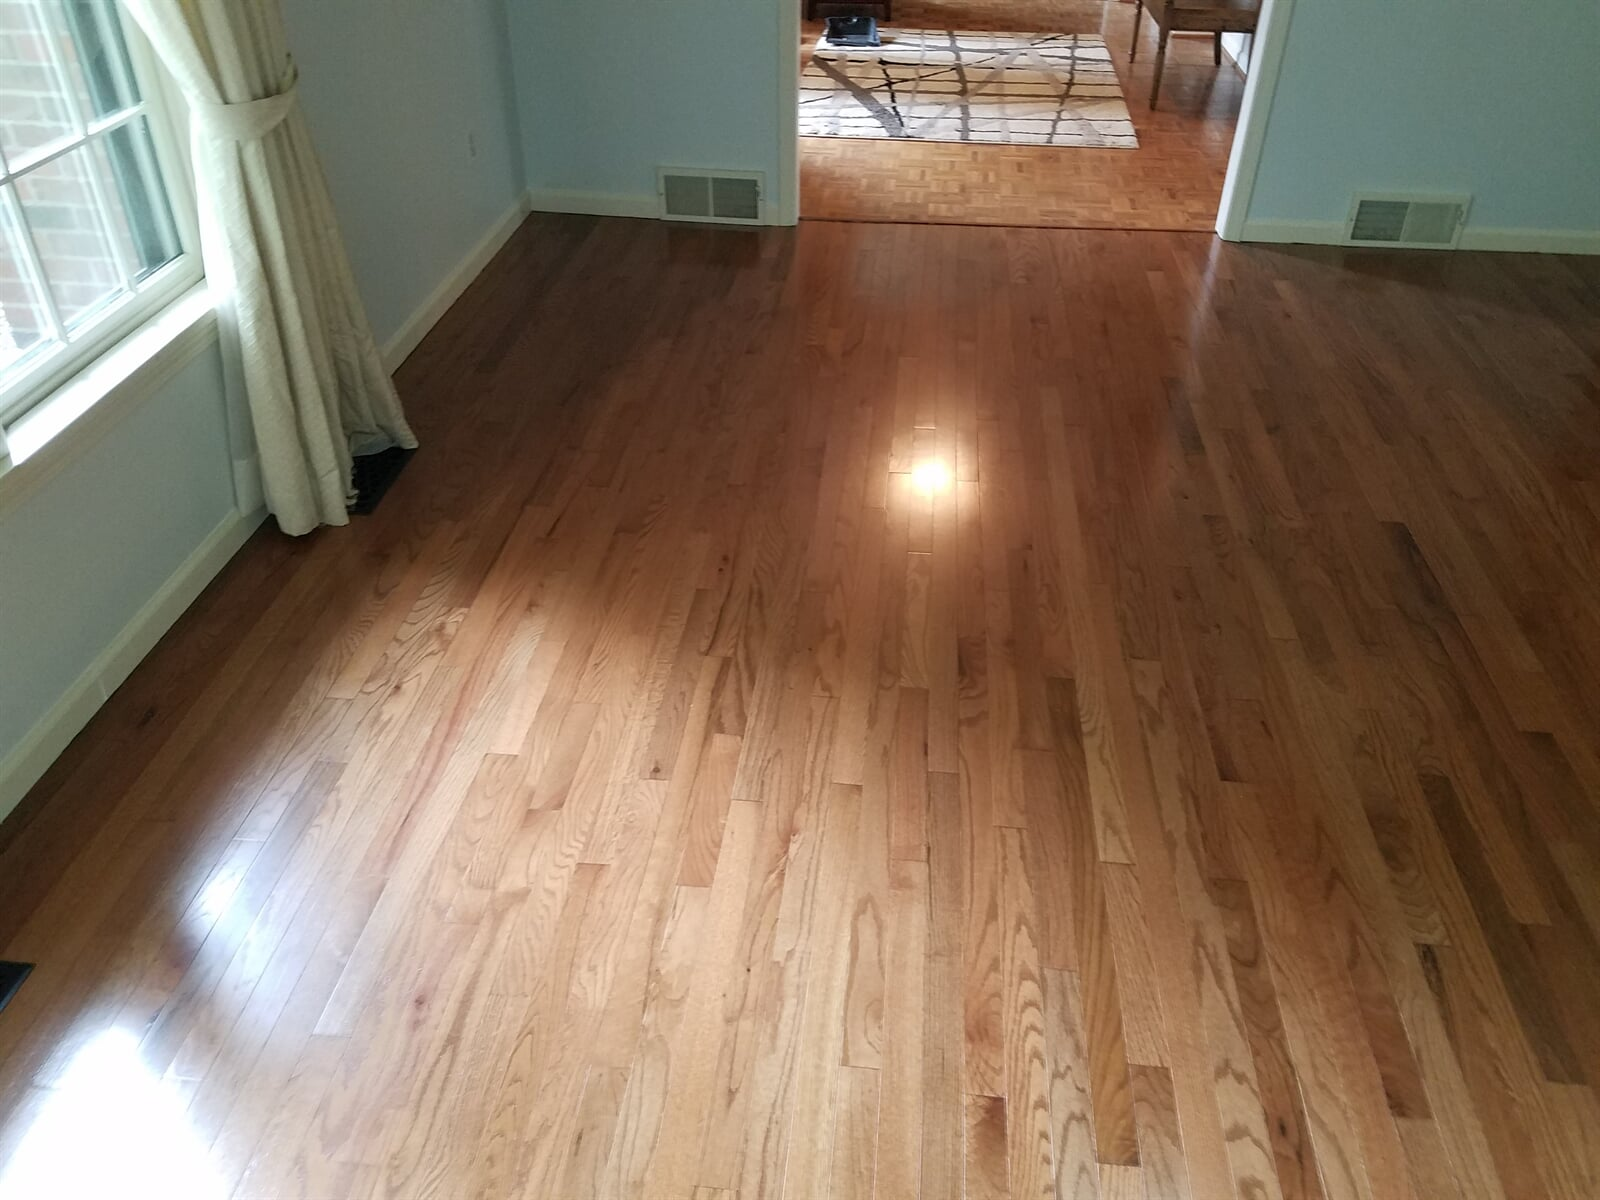 Room in house feature newly installed hardwood flooring